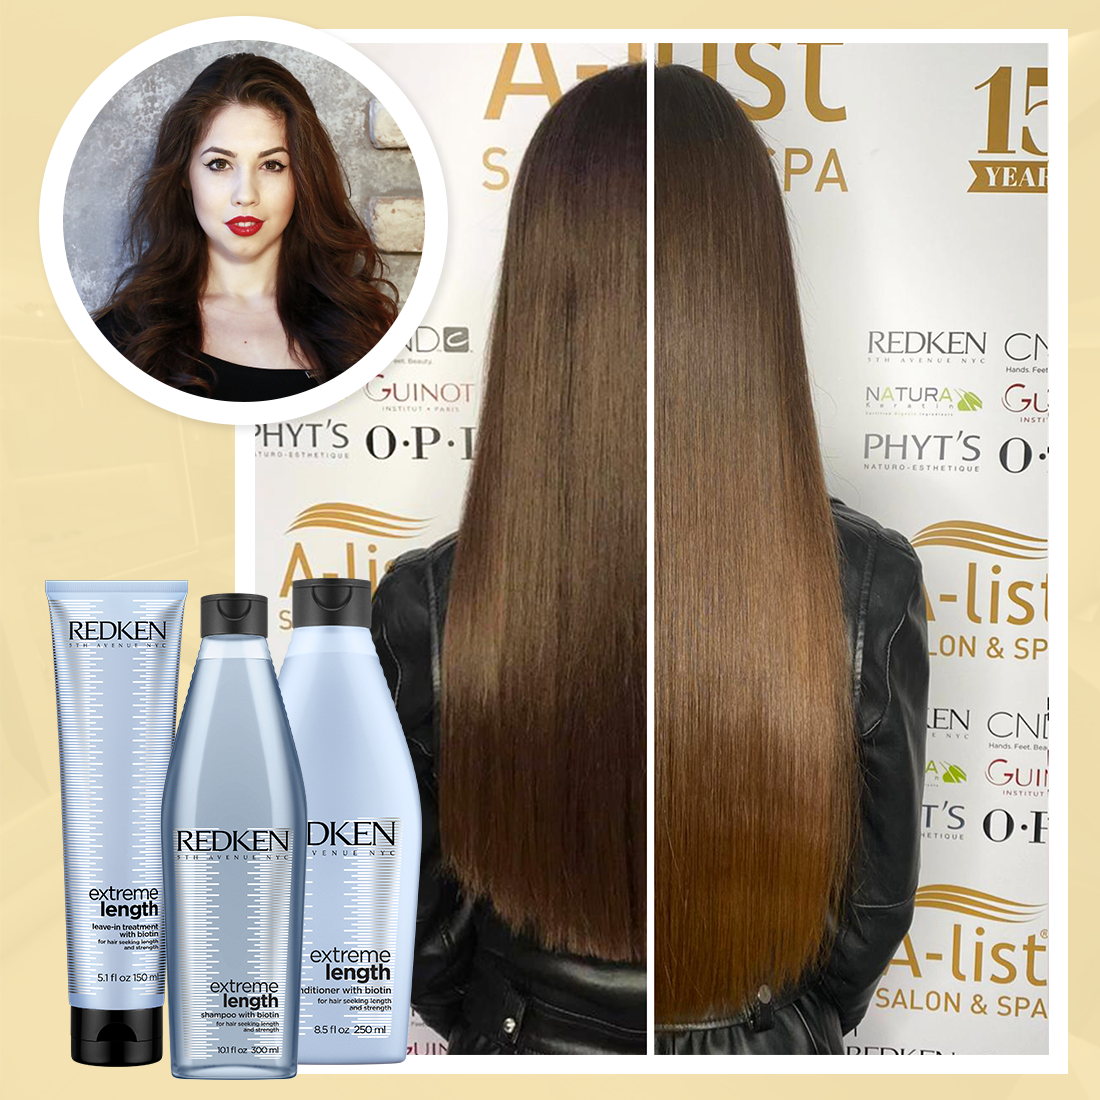 Redken Extreme Length with Exclusive discount